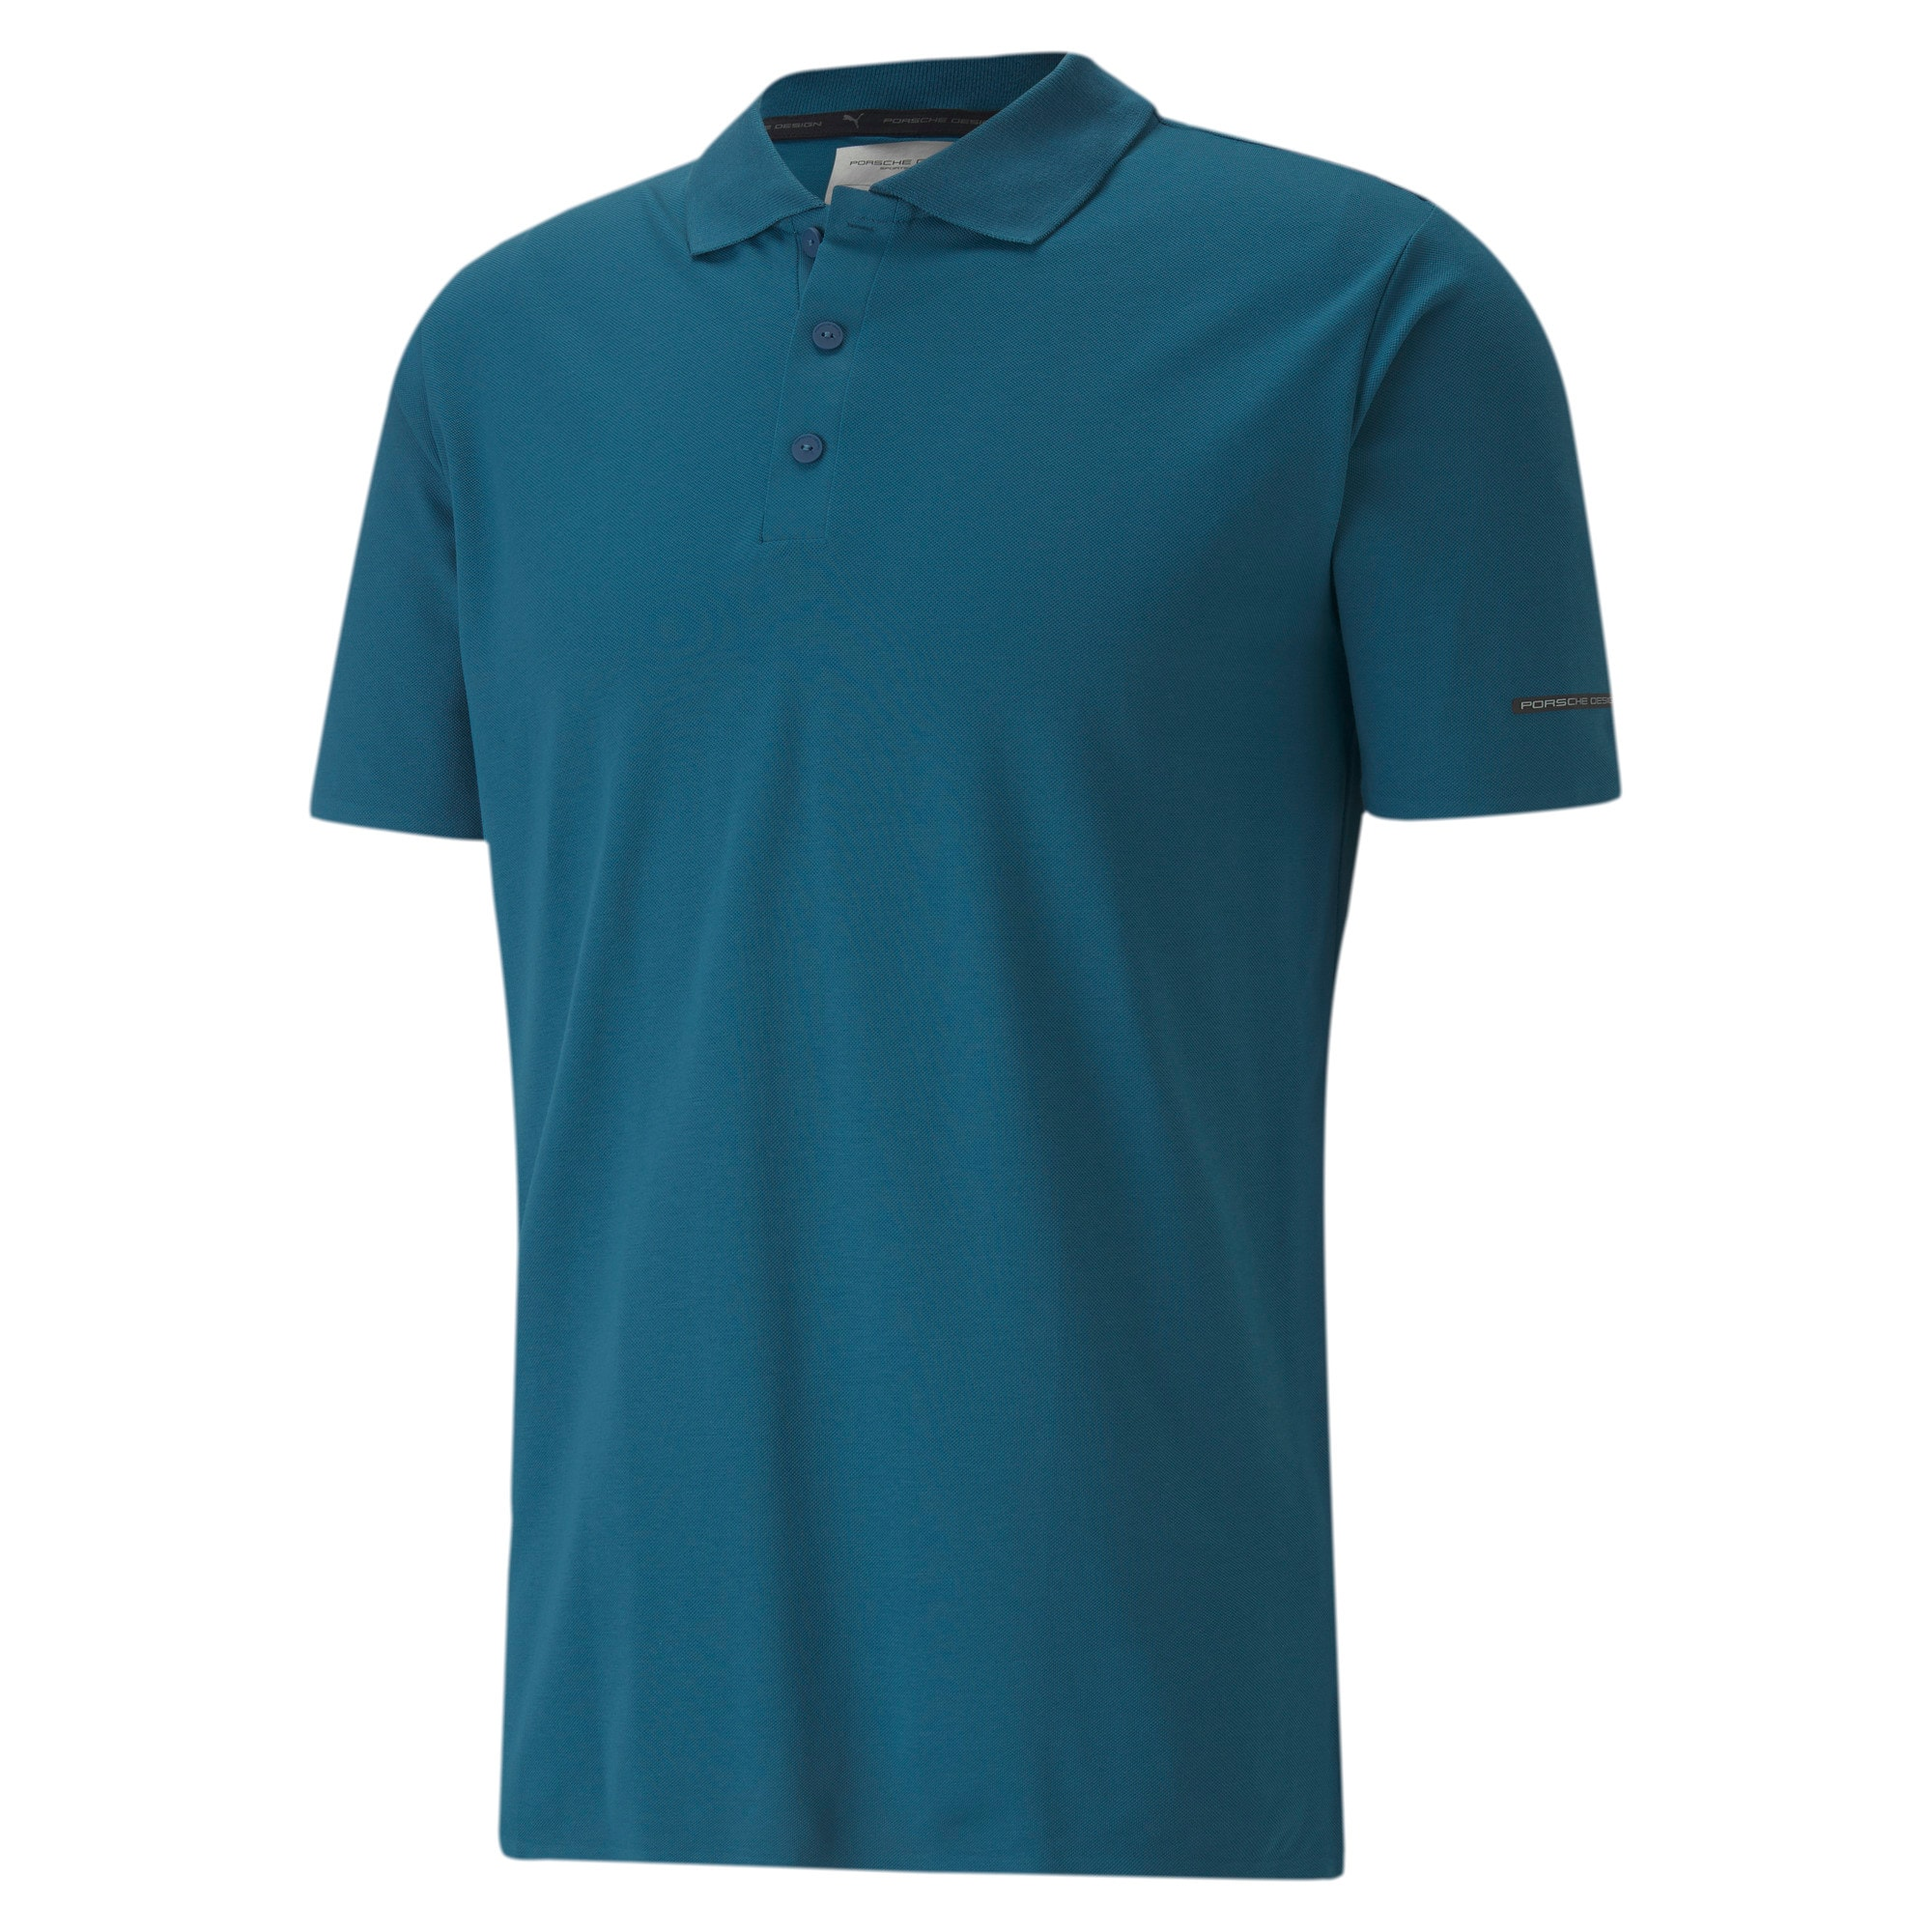 Thumbnail 4 of Men's Motorsports Polo, Moroccan Blue, medium